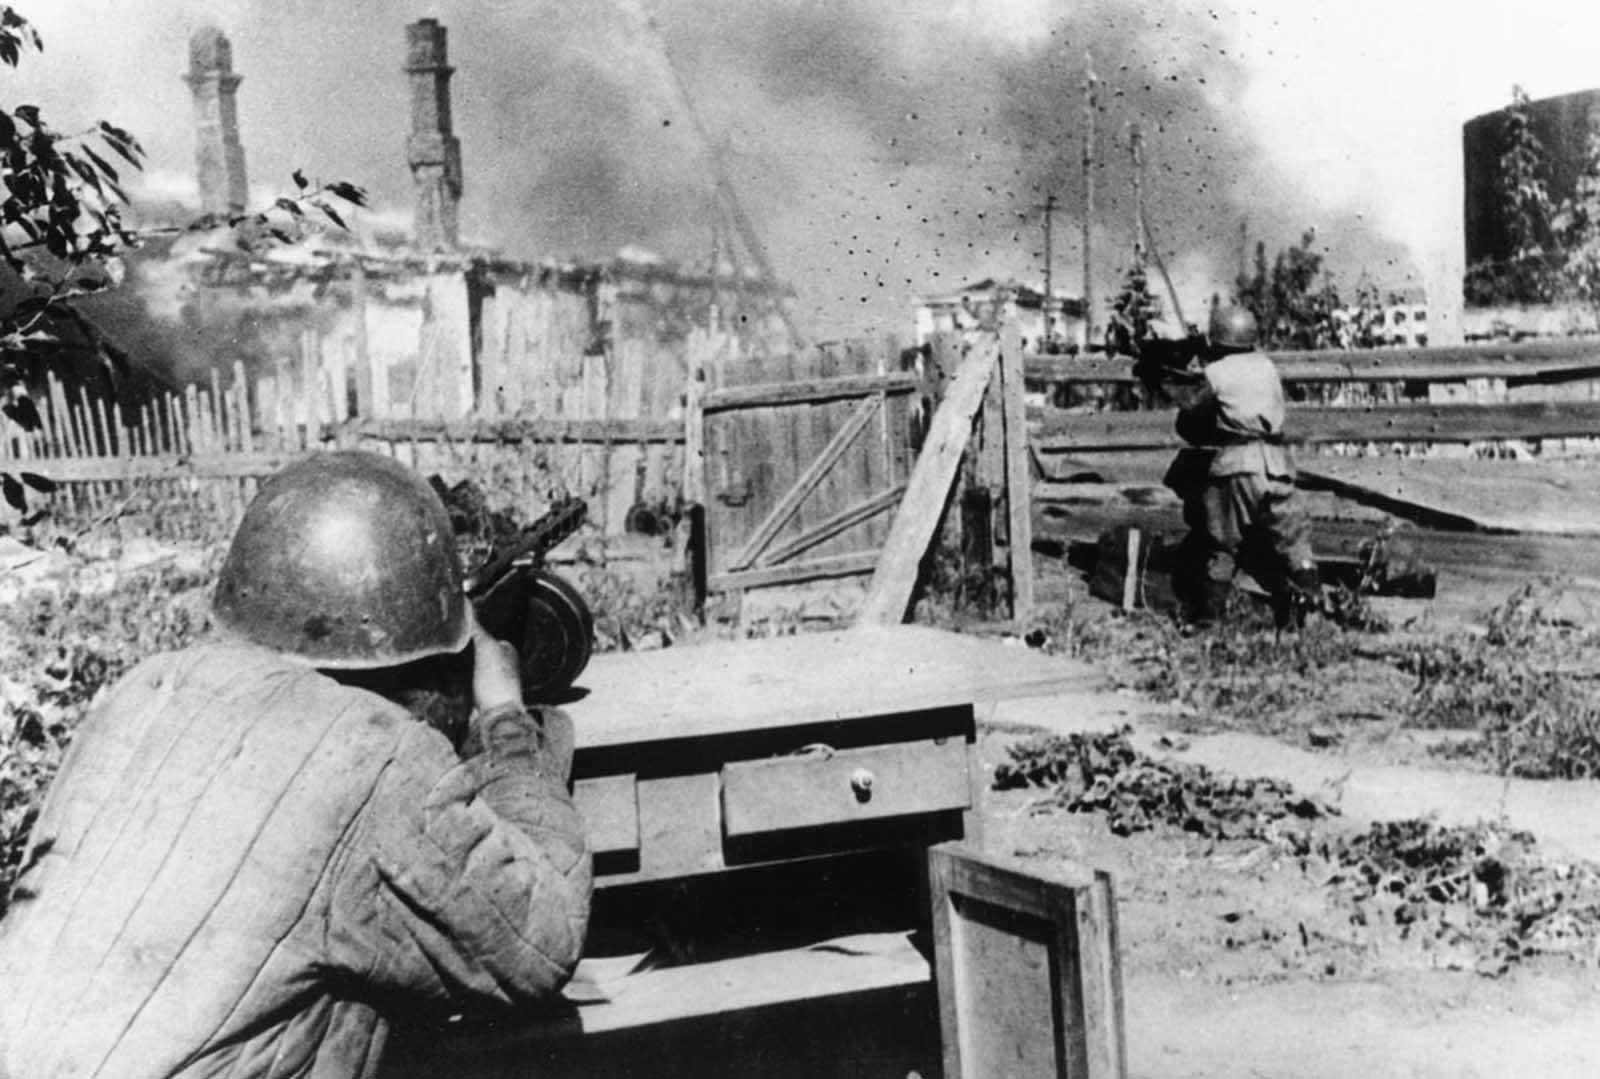 Standing in the backyard of an abandoned house in the outskirts of the besieged city of Leningrad, a rifleman of the Red Army aims and fires his machine gun at German positions on December 16, 1942.